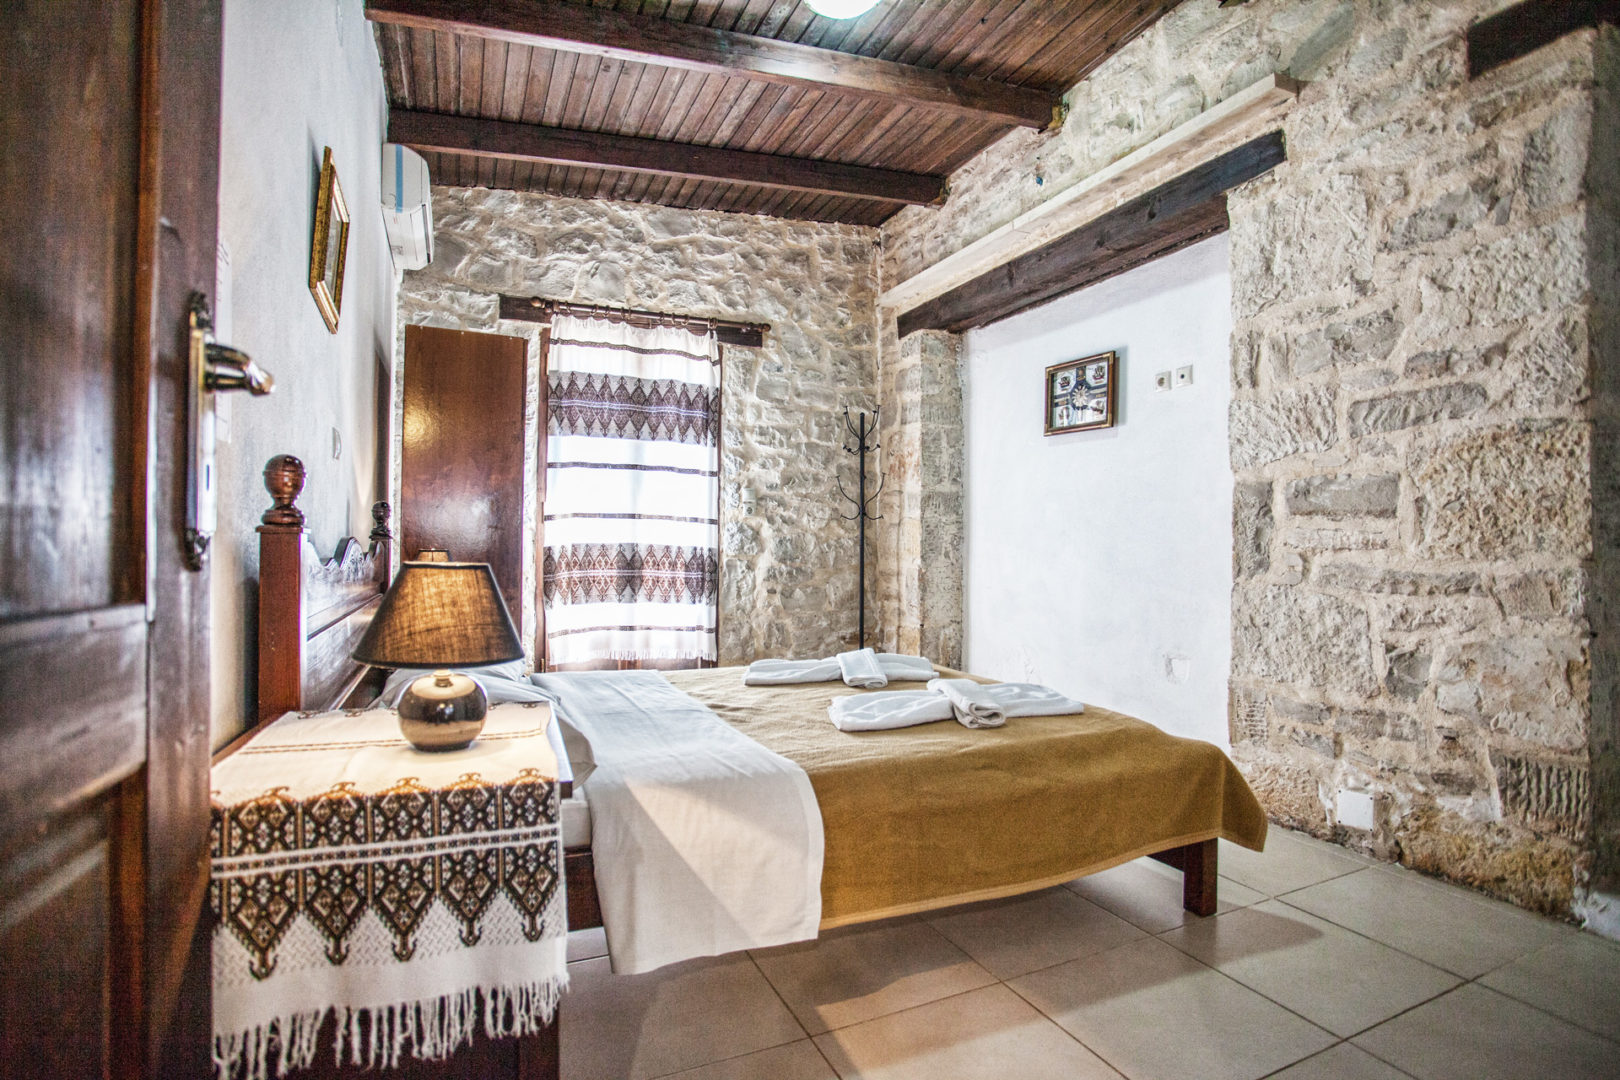 Accommodation in Bali Crete - Large Maisonette 4 - Stone Village